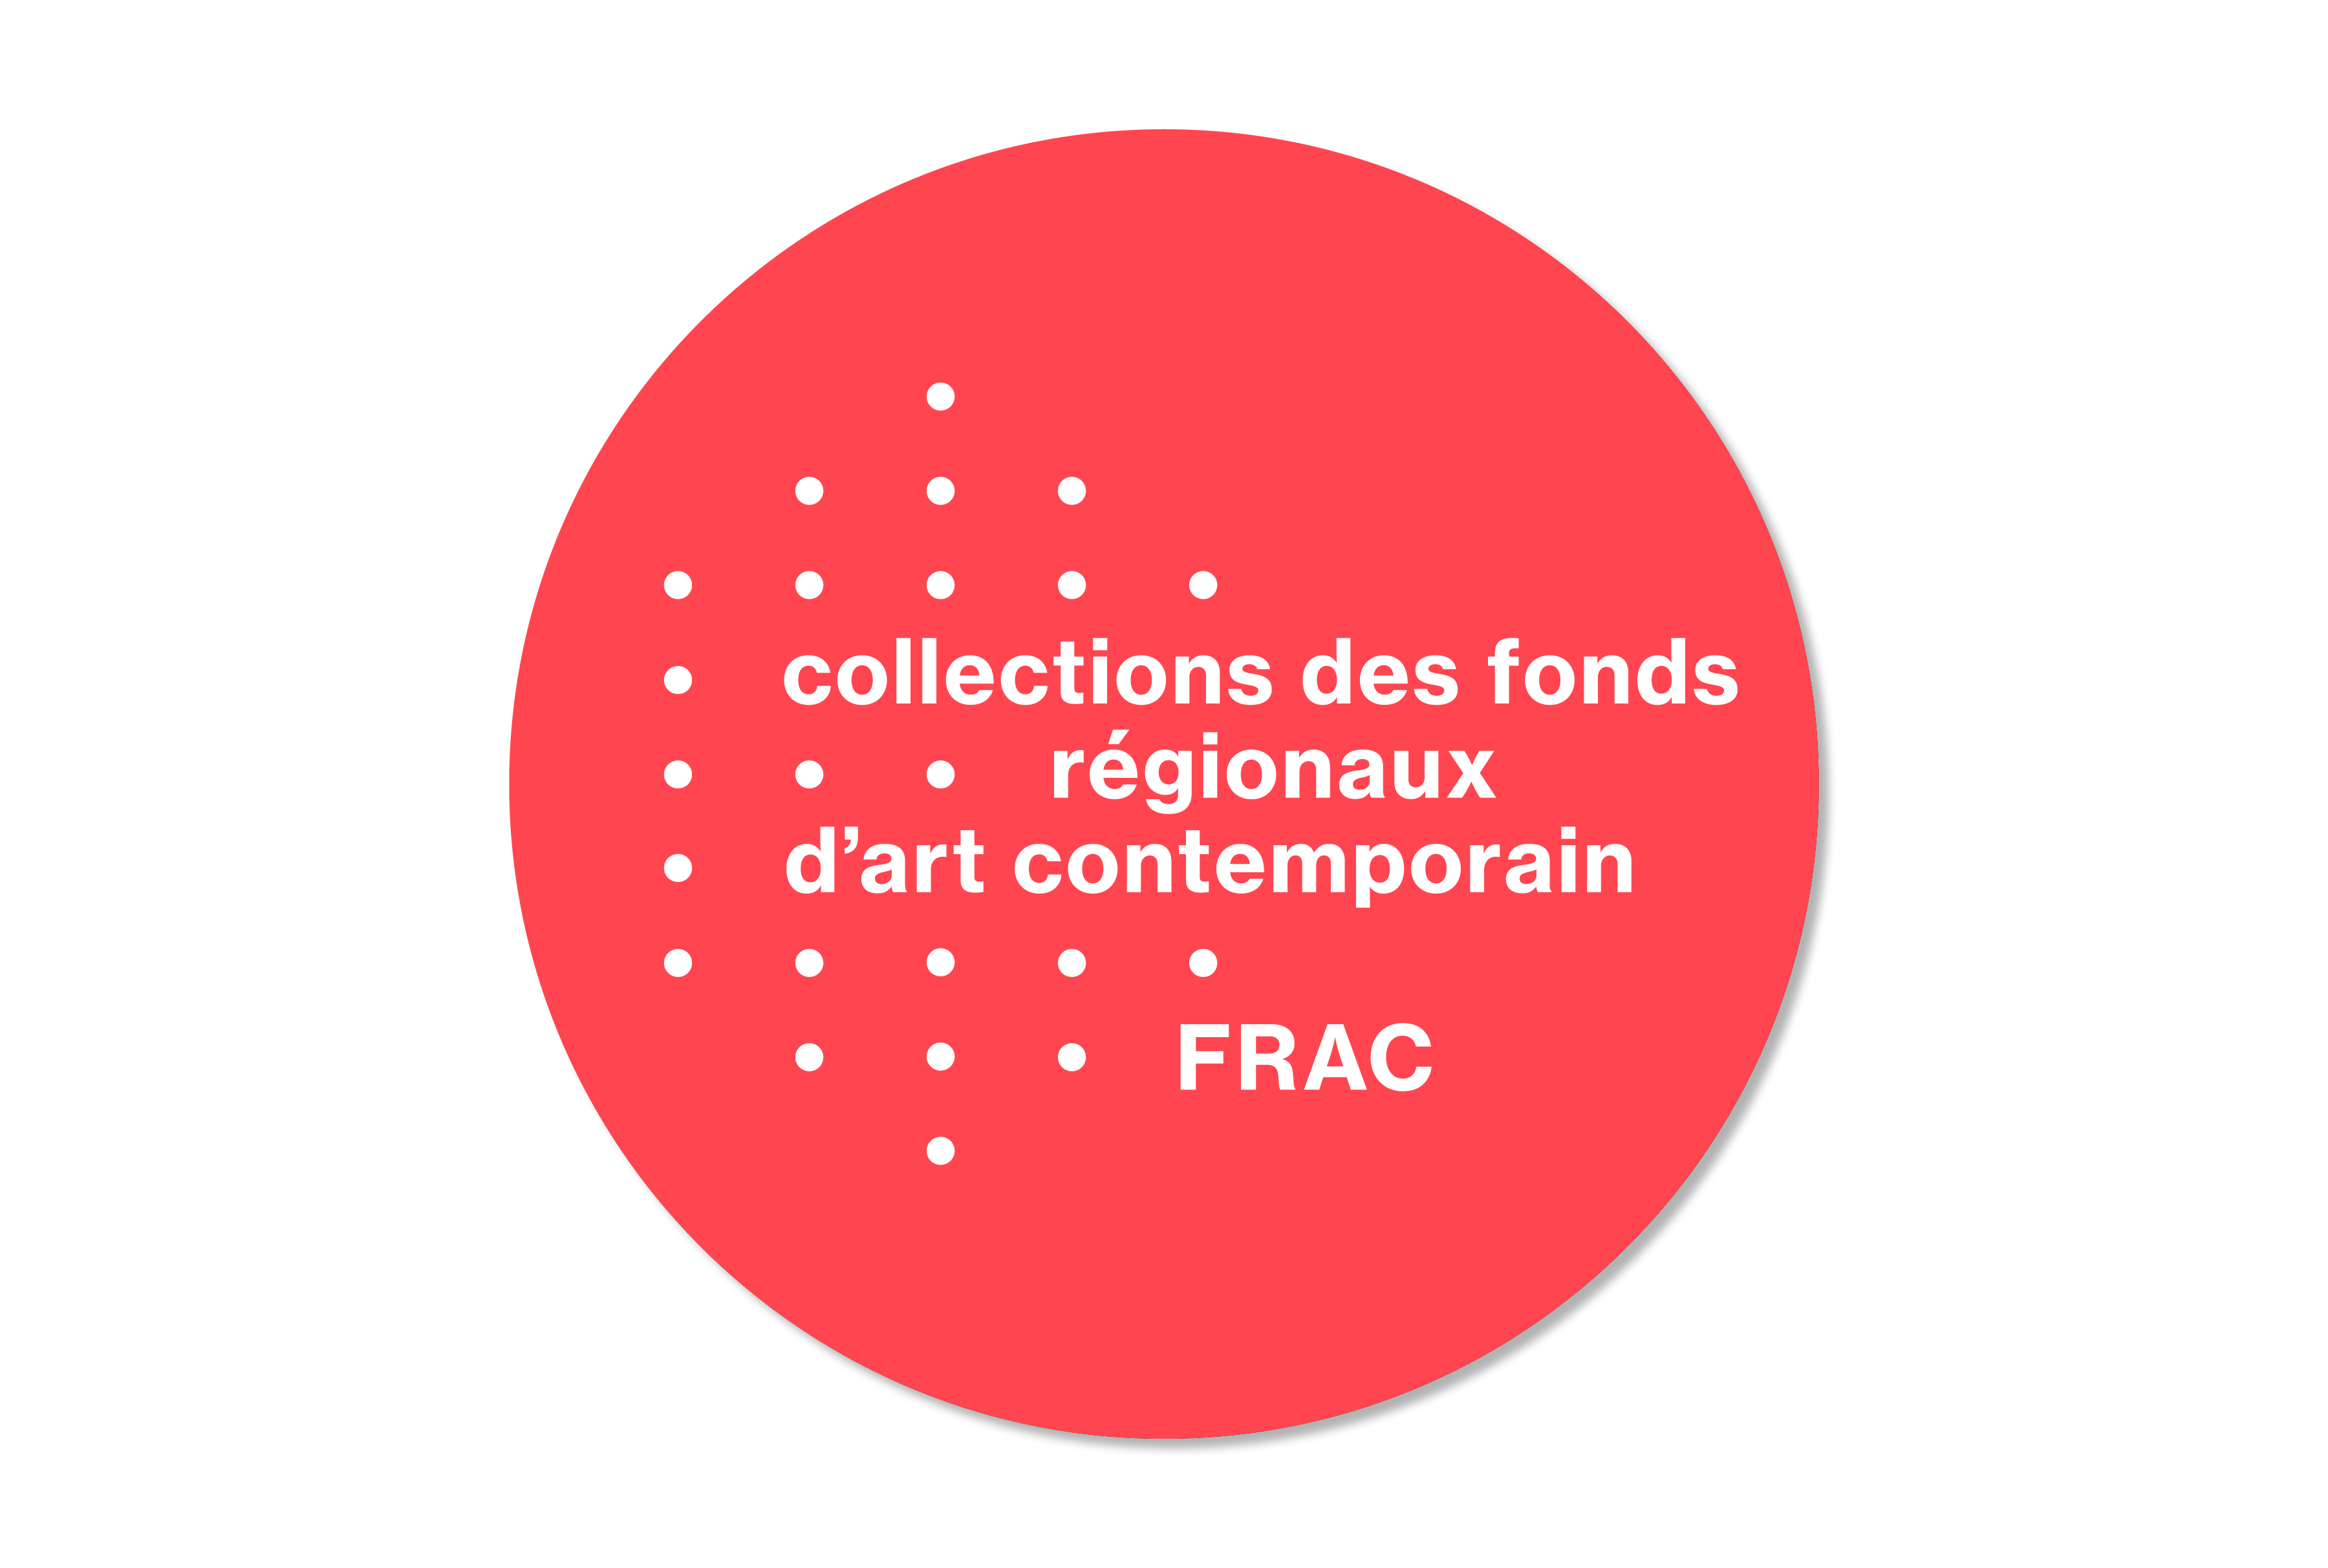 Collections des fonds régionaux d'art contemporain